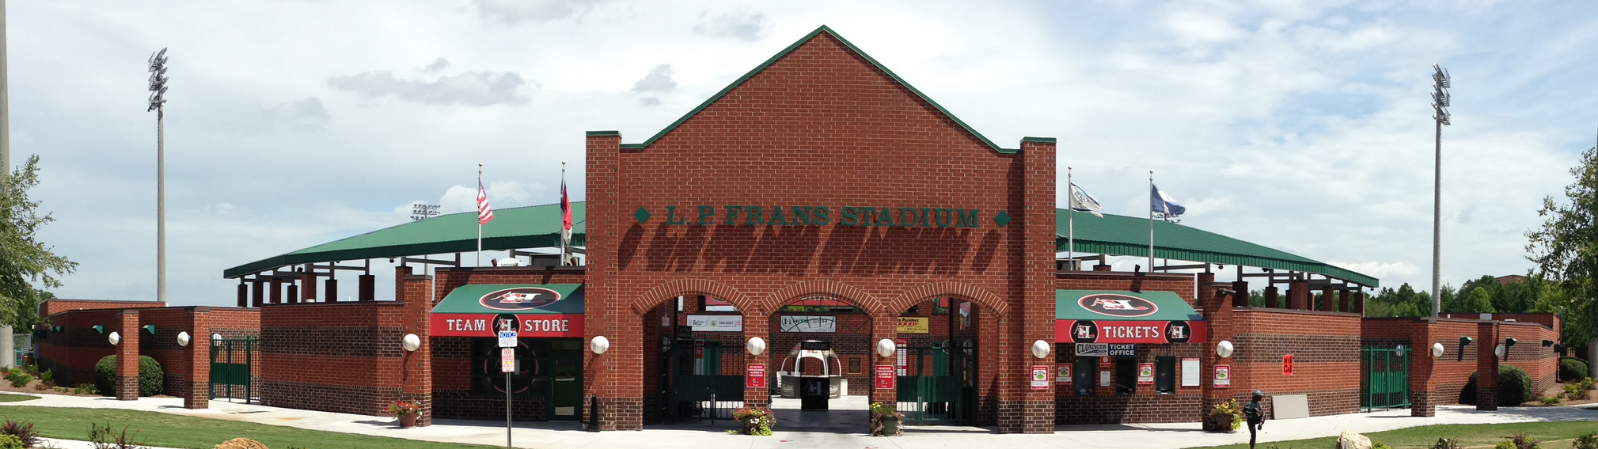 L.P. Frans Stadium in Hickory, NC